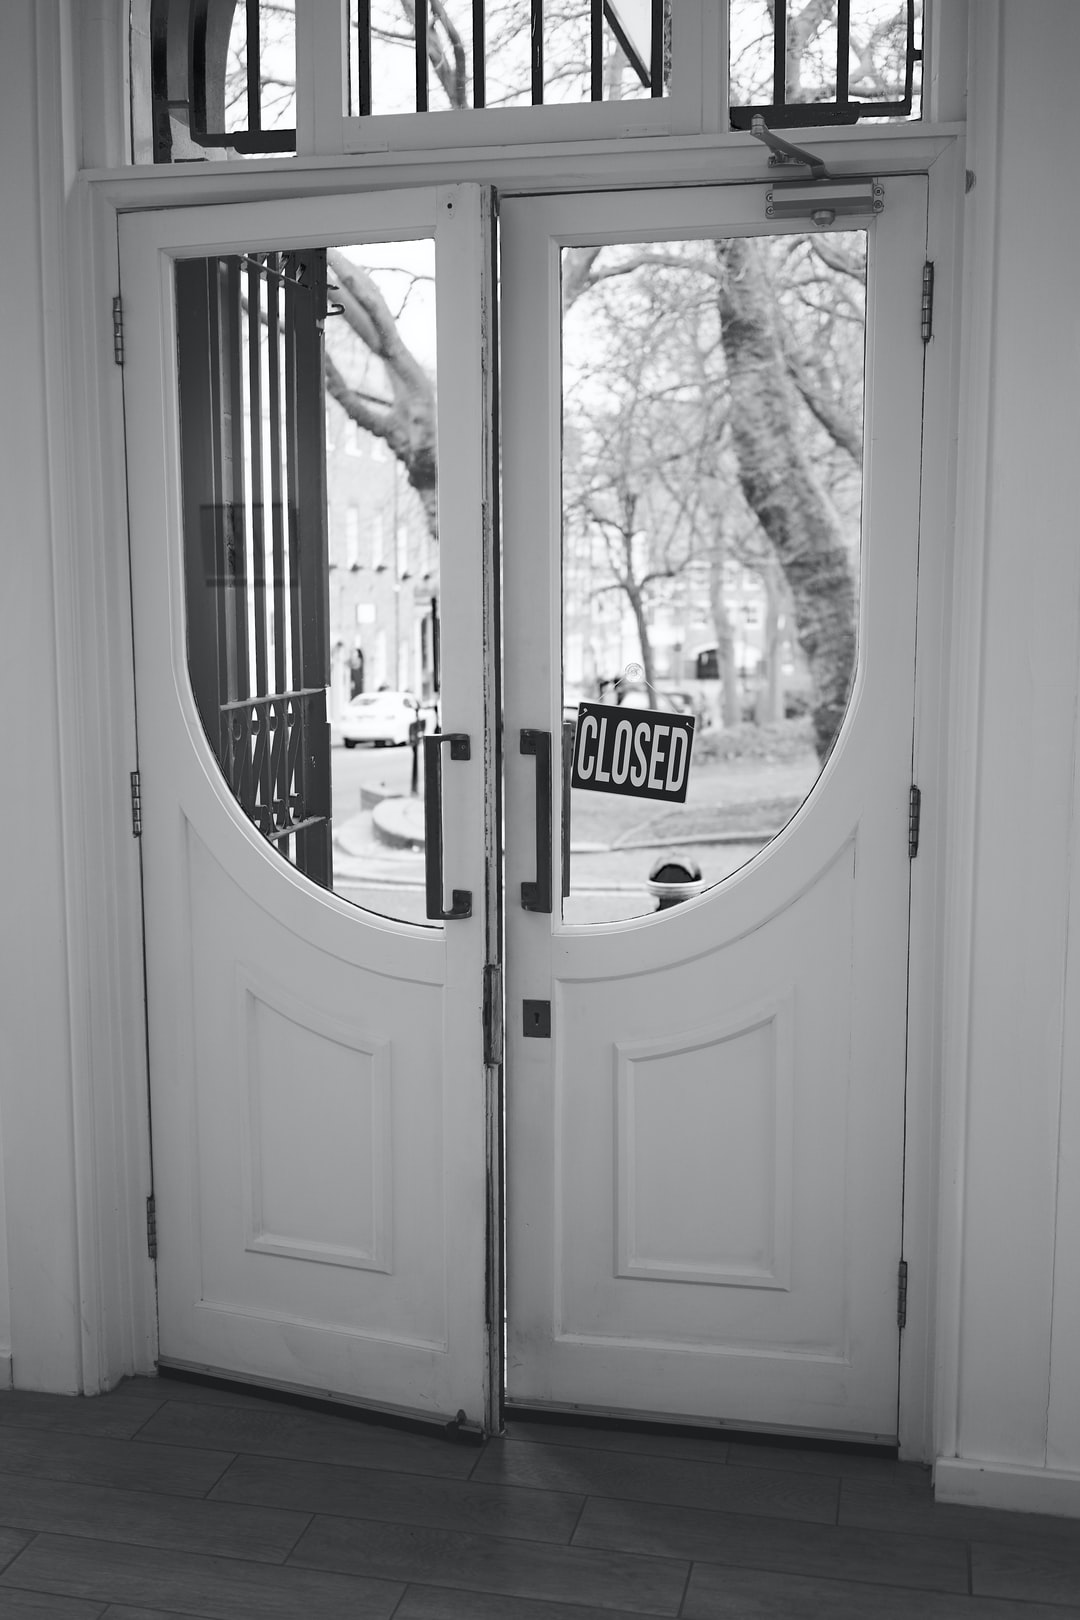 Door with a sign closed